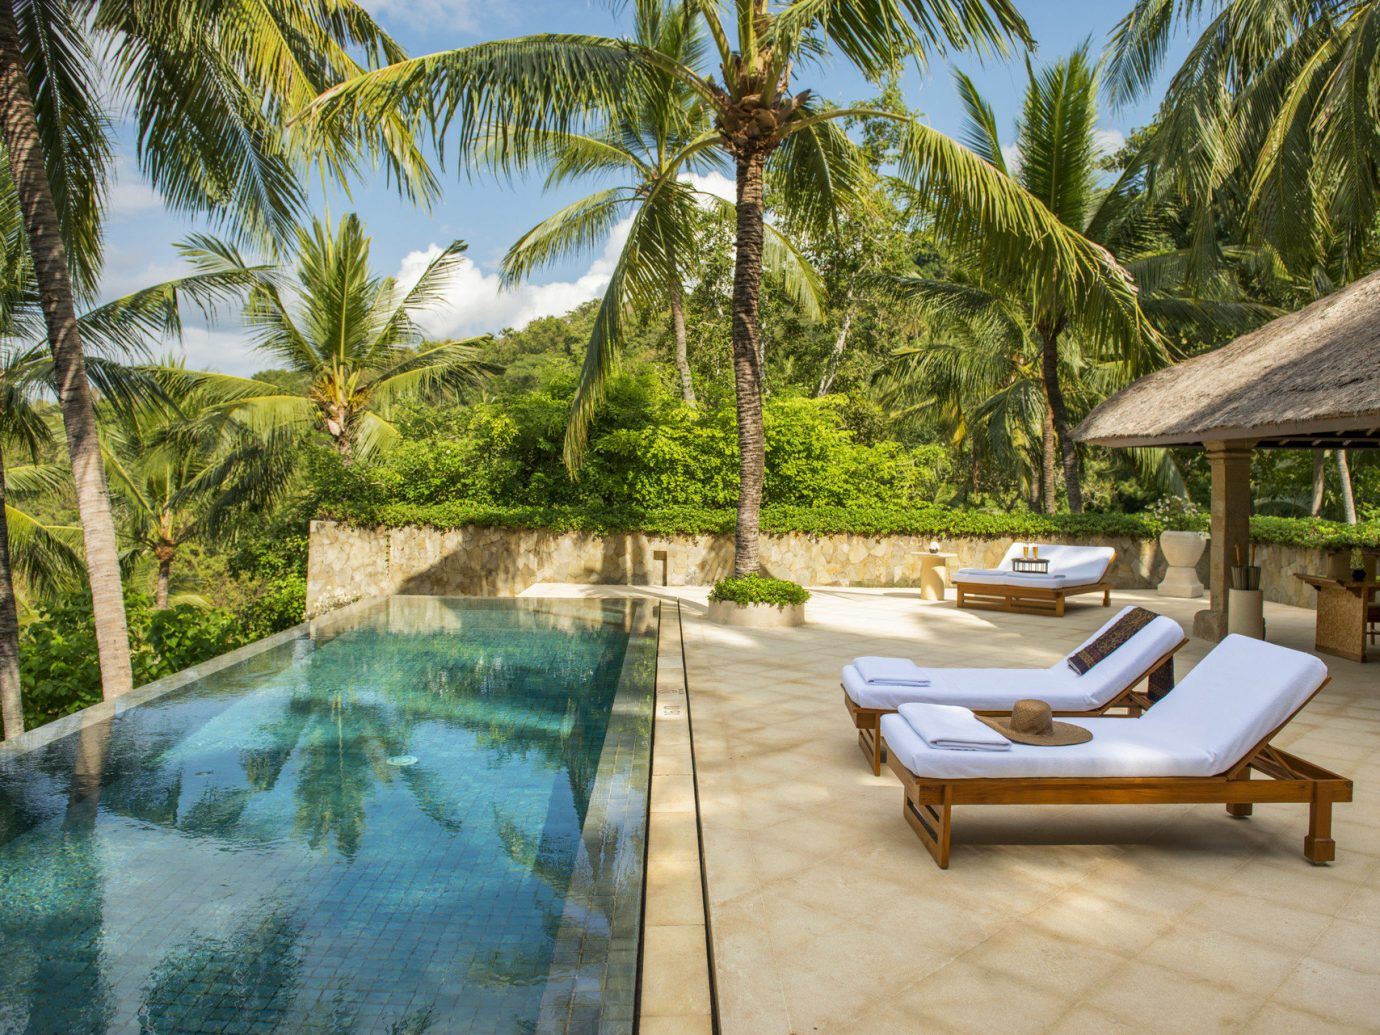 Health + Wellness Hotels tree outdoor swimming pool leisure property Resort estate vacation palm Villa backyard caribbean area plant